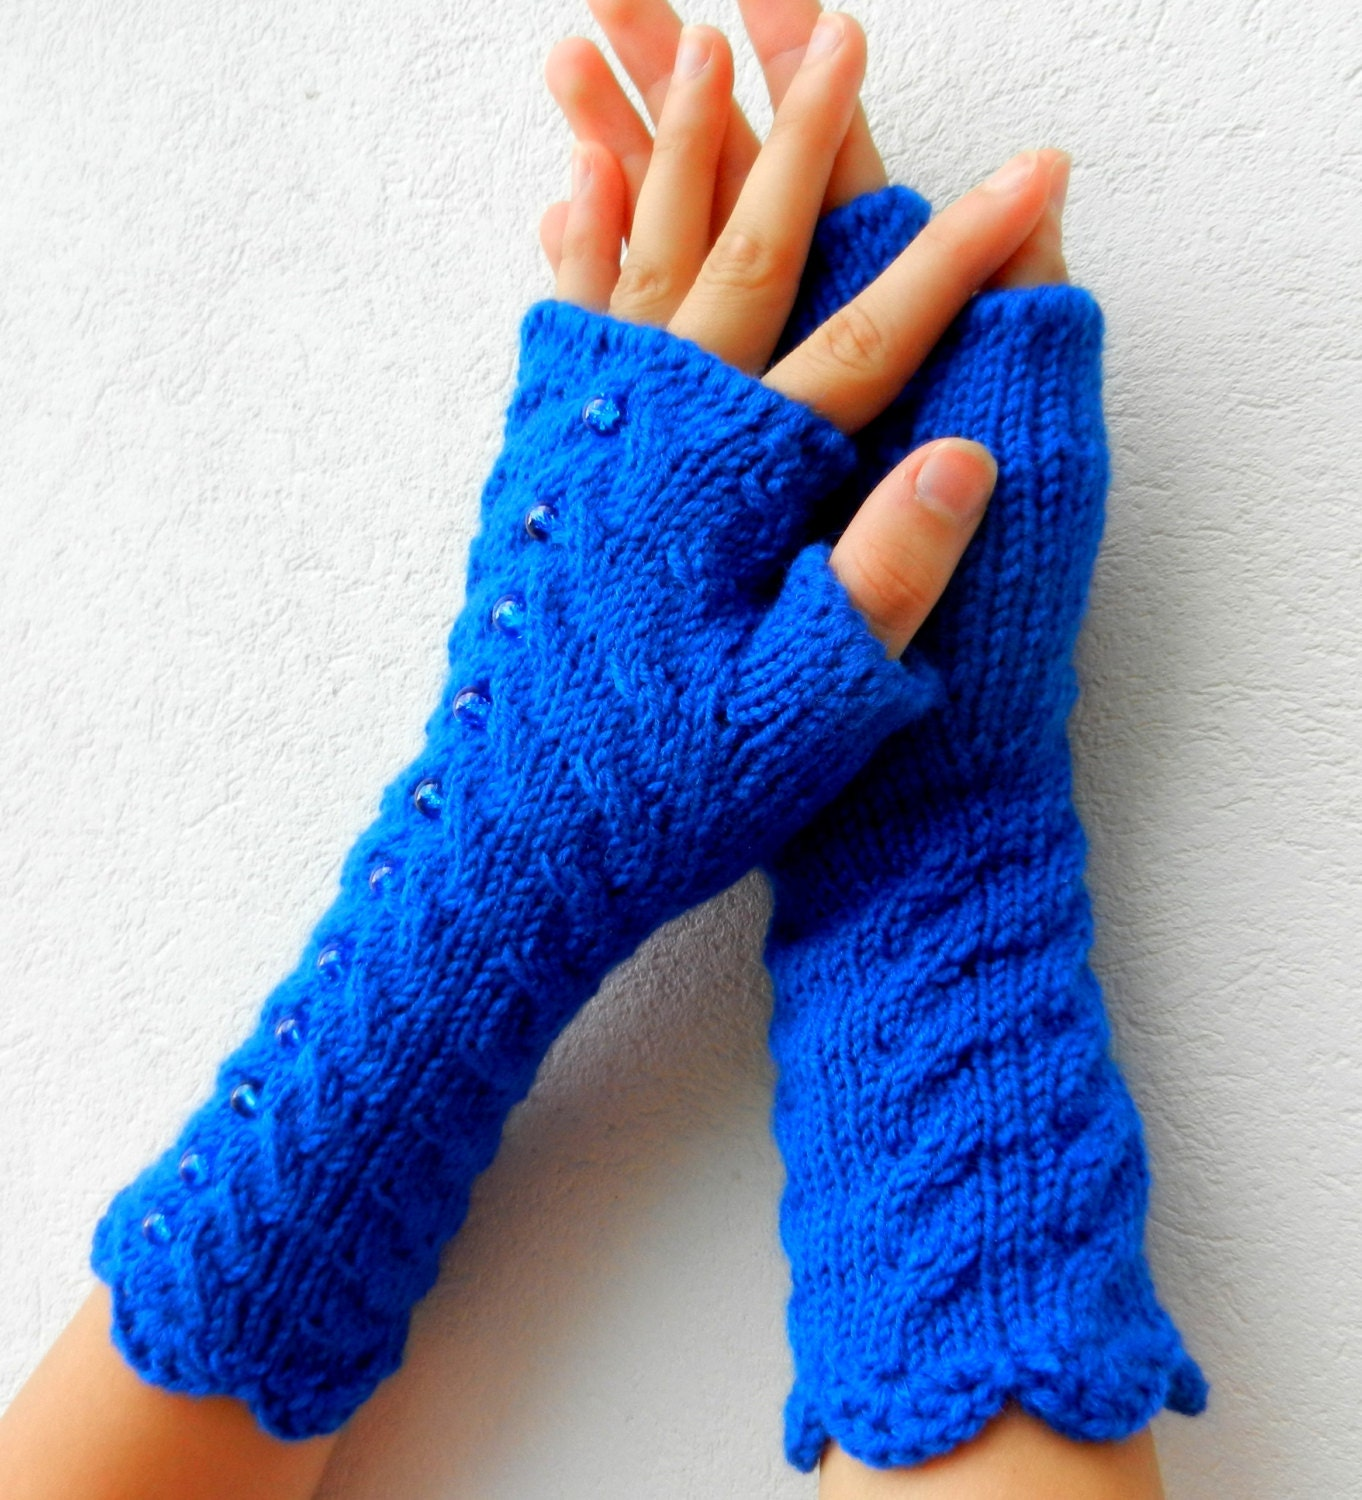 Cobalt blue Fingerless, dazzling blue fingerless, bright blue fingerless, Long Cabled Fingerless / Wrist Warmers / Electric Blue - MioLauma